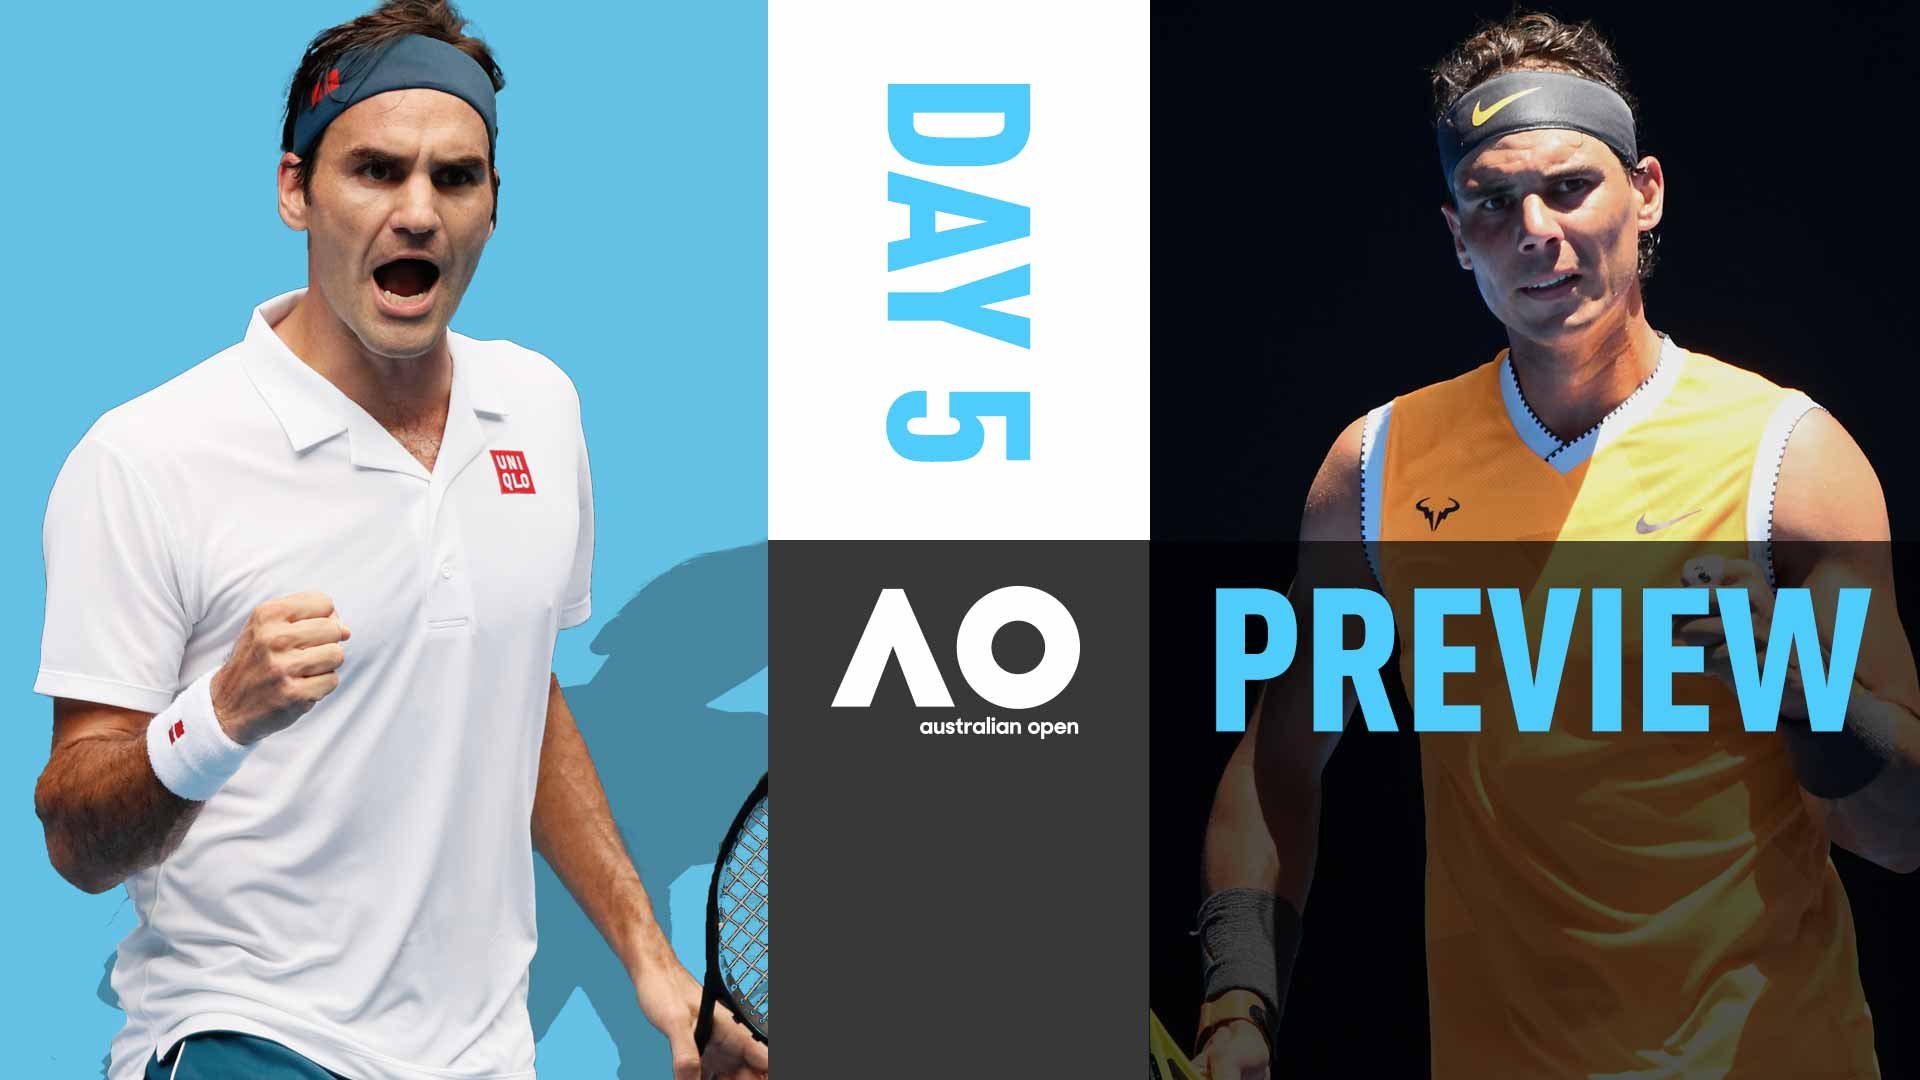 Roger Federer and Rafael Nadal both chase Australian Open fourth round berths.